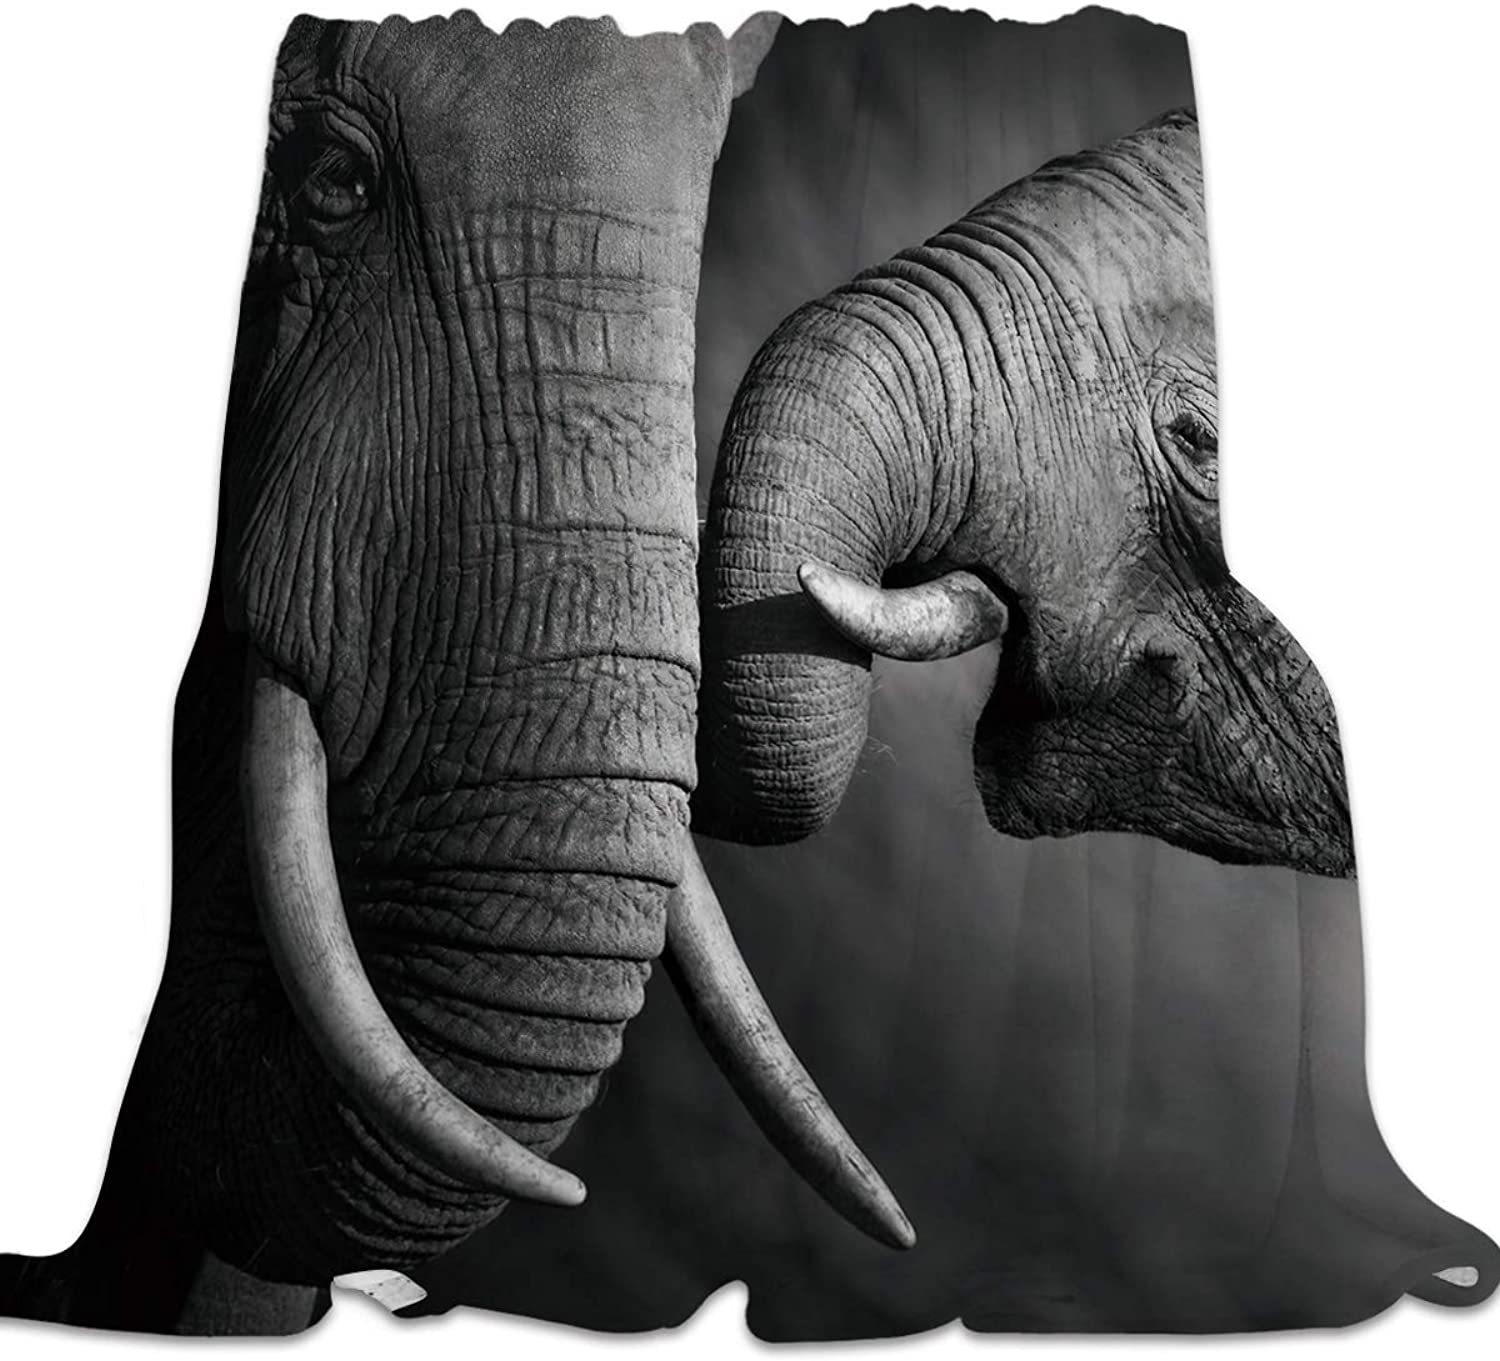 Clouday Flannel Fleece Bed Blanket Warm ThrowBlankets for Girls Boys,Cozy Lightweight Blankets for Bedroom Living Room Sofa Couch,3D Elephant Animal Printed Black and White,49x59inch